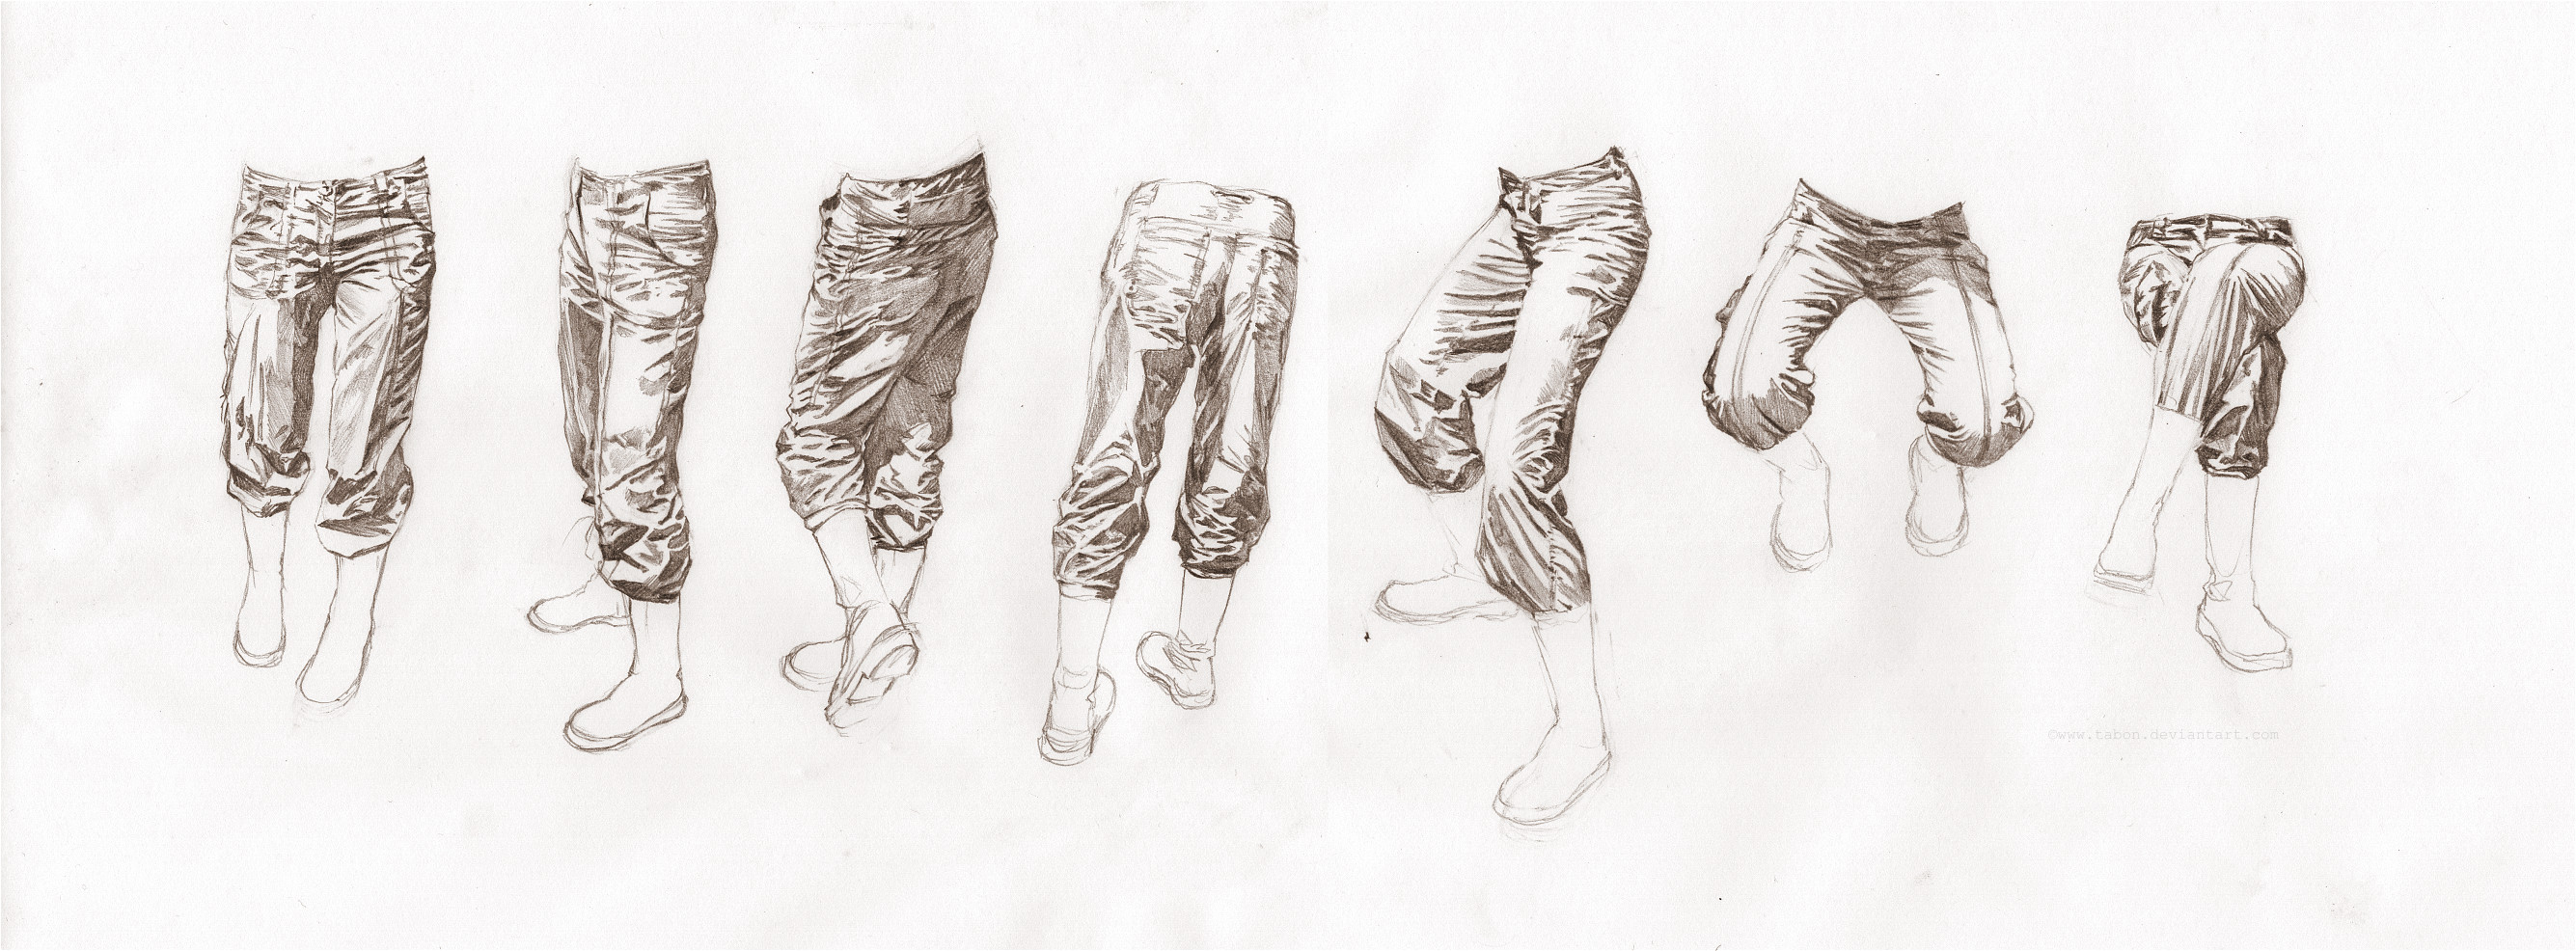 Trouser creases study by Tabon